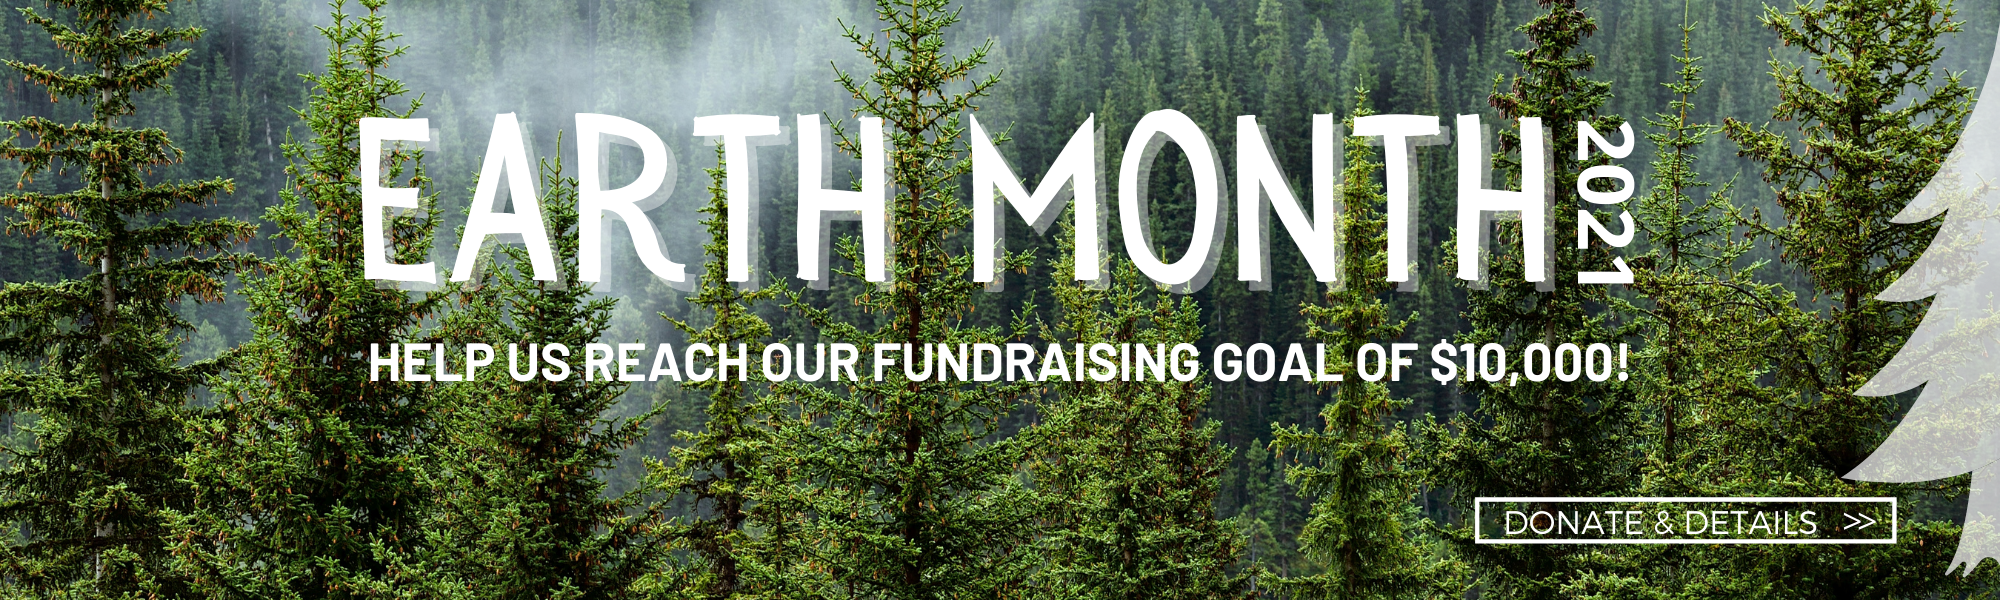 Earth month 2021 help us reach our fundraising goal of $10,000